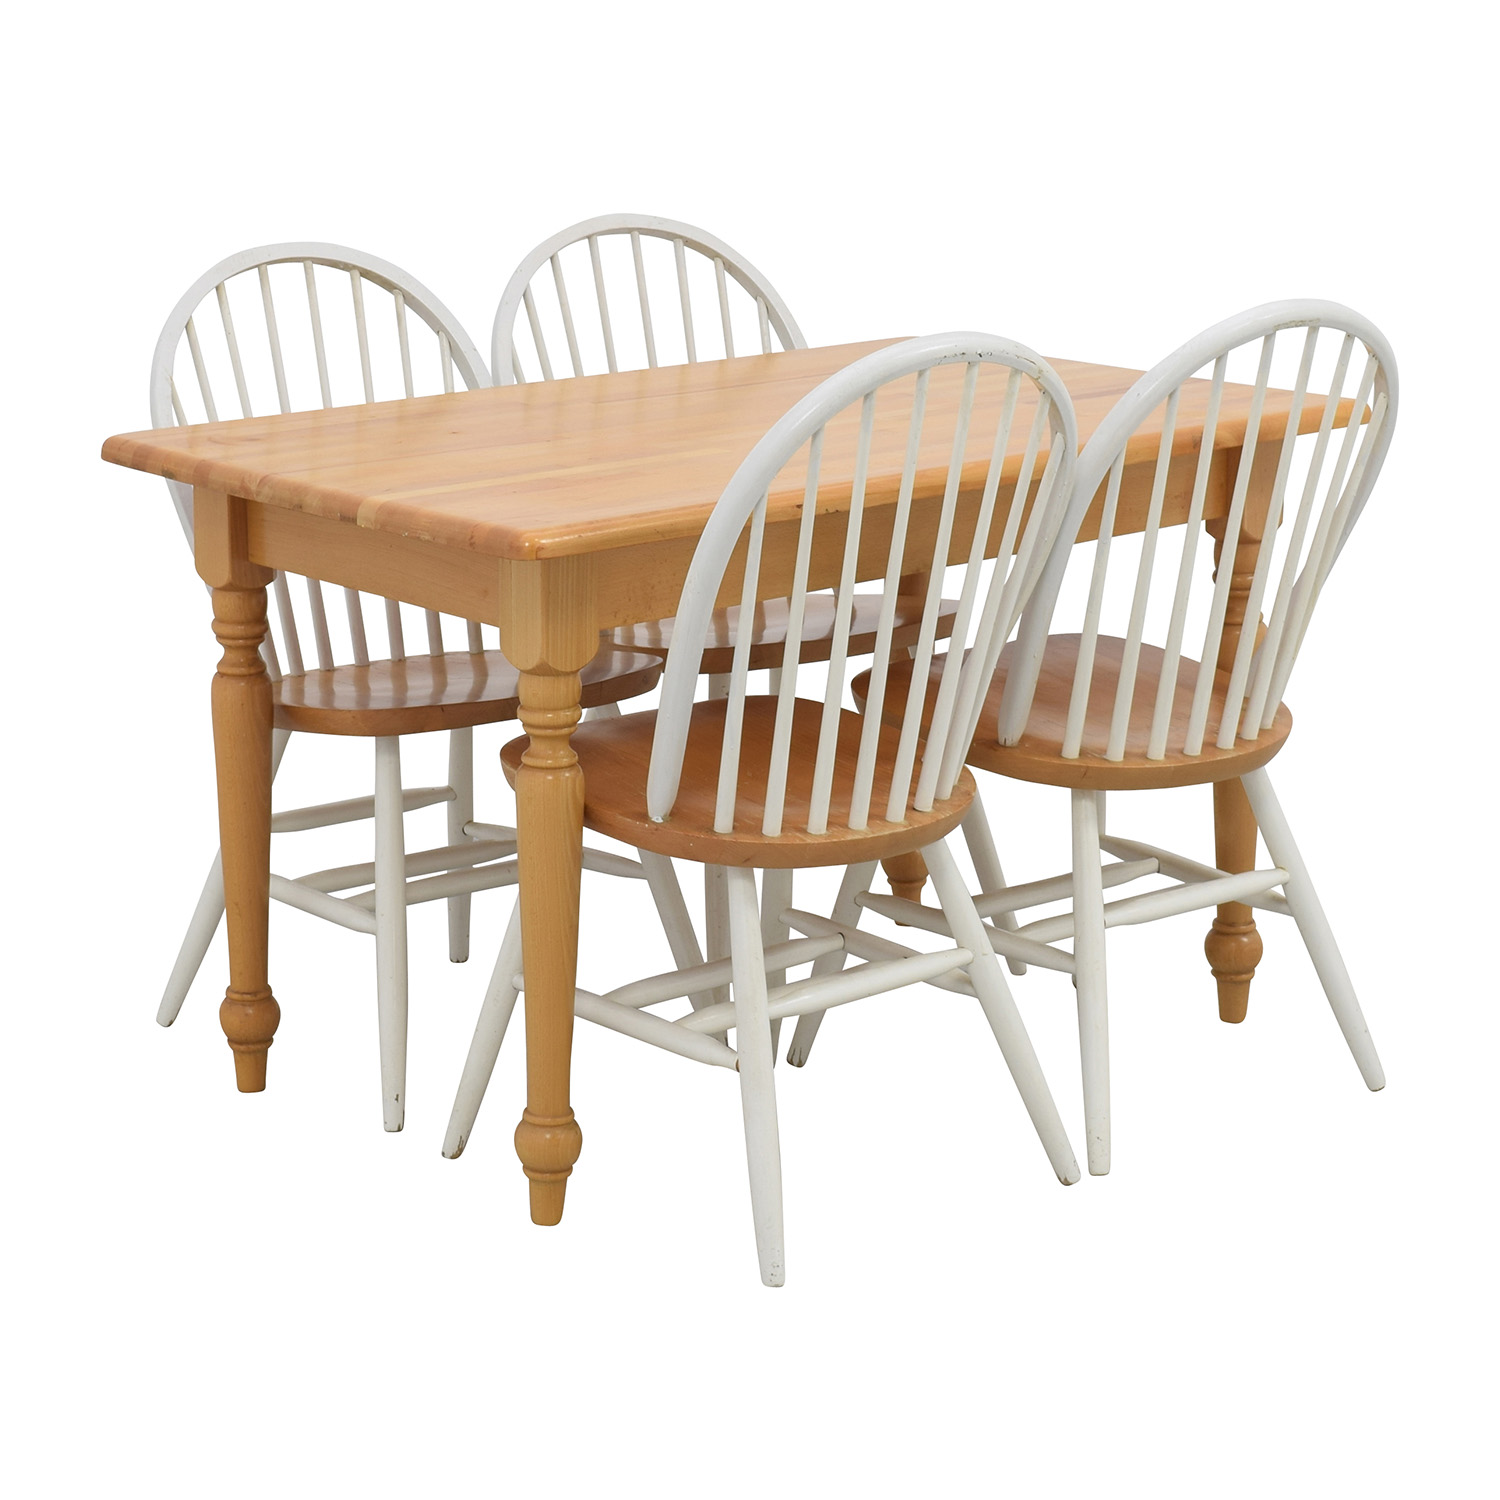 White Butcher Block Kitchen Table : 84% OFF - Butcher Block Kitchen Table and Four Chairs / Tables